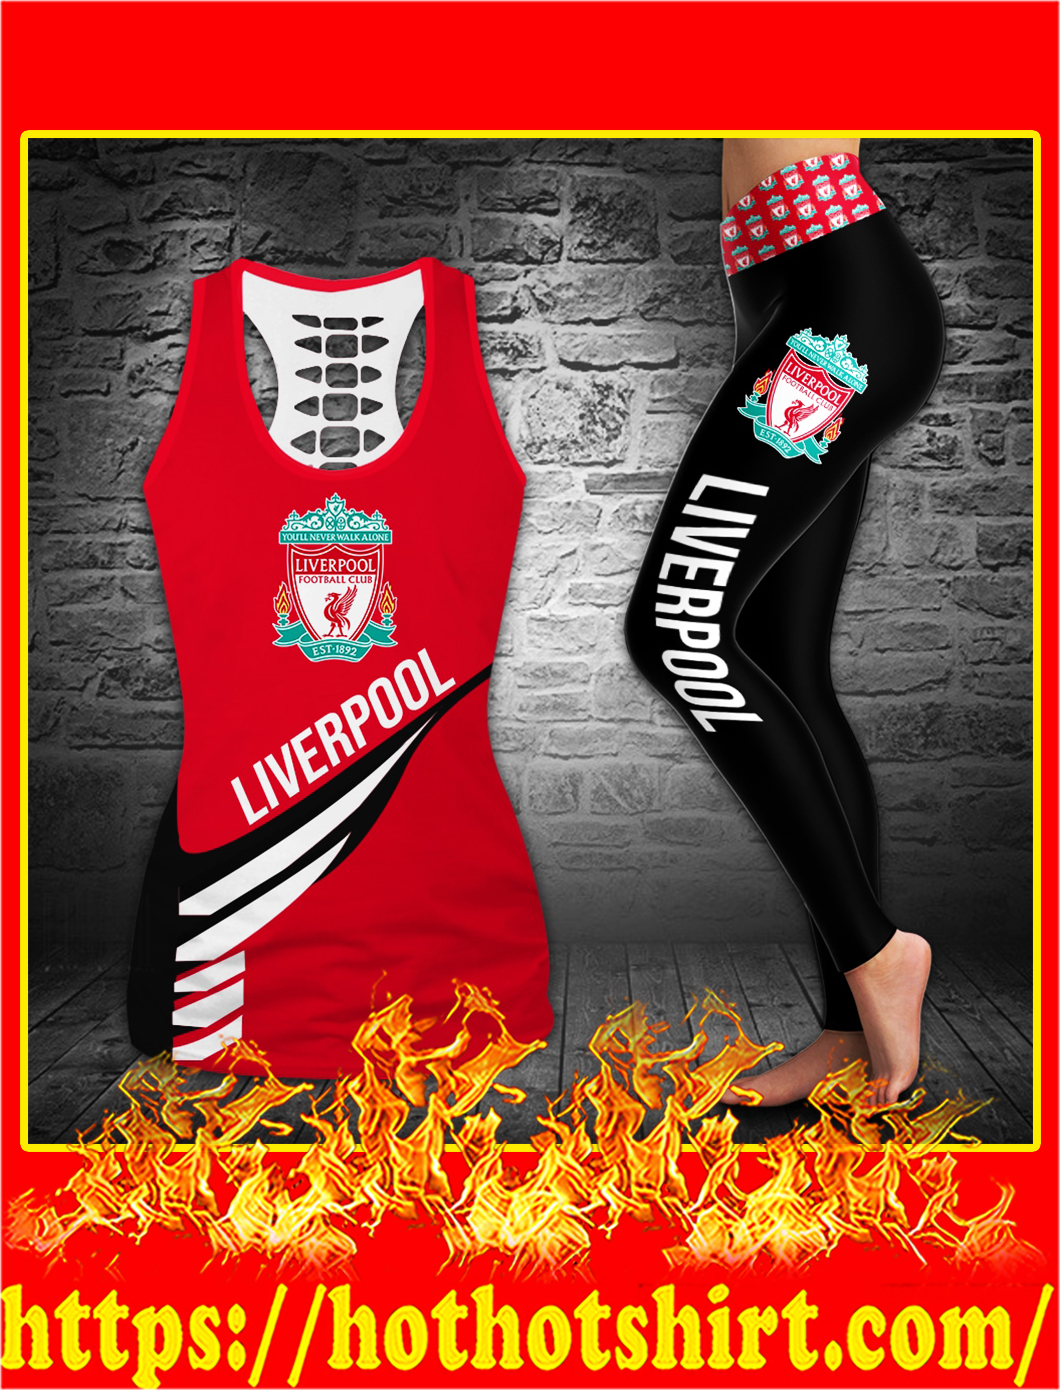 Liverpool football club hollow tank top and legging